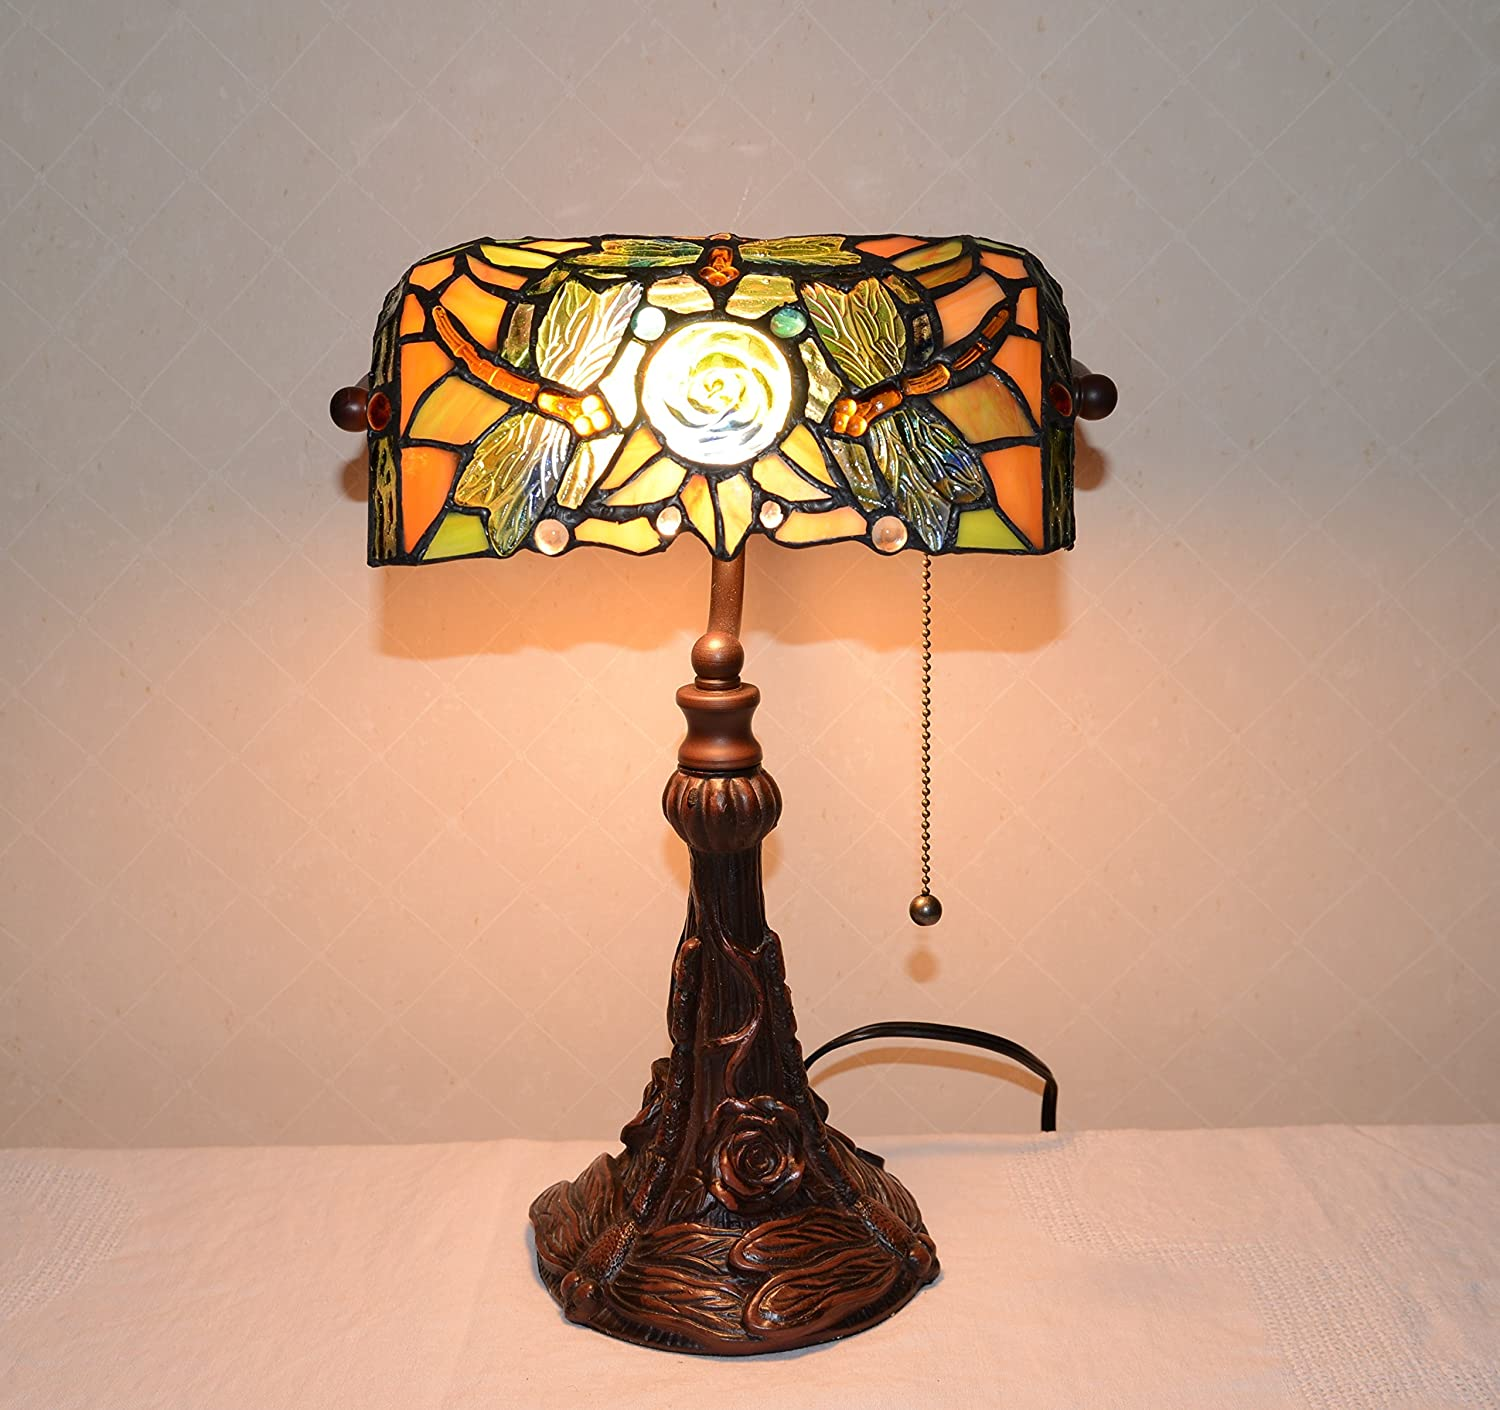 Stained glass tiffany style dragonfly turtleback bankers lamp stained glass tiffany style dragonfly turtleback bankers lamp table desk lamp amazon geotapseo Gallery